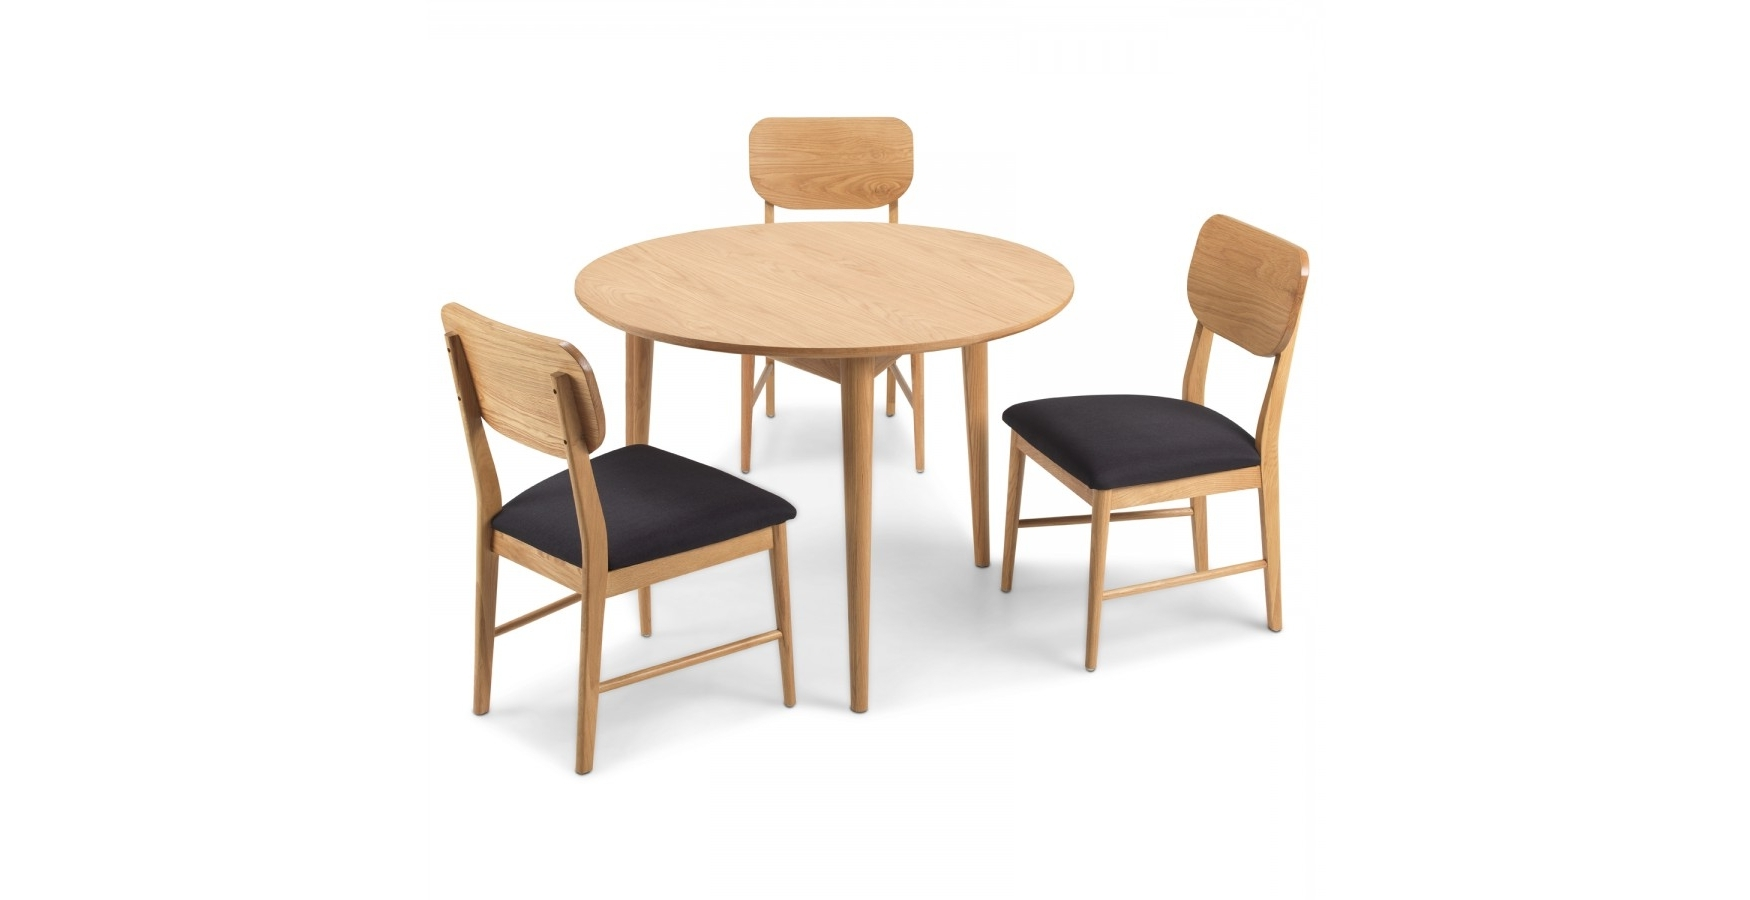 Skioa Circular Dining Table With 2 Chairs – Lifestyle Furniture Uk With 2017 Circular Oak Dining Tables (View 22 of 25)